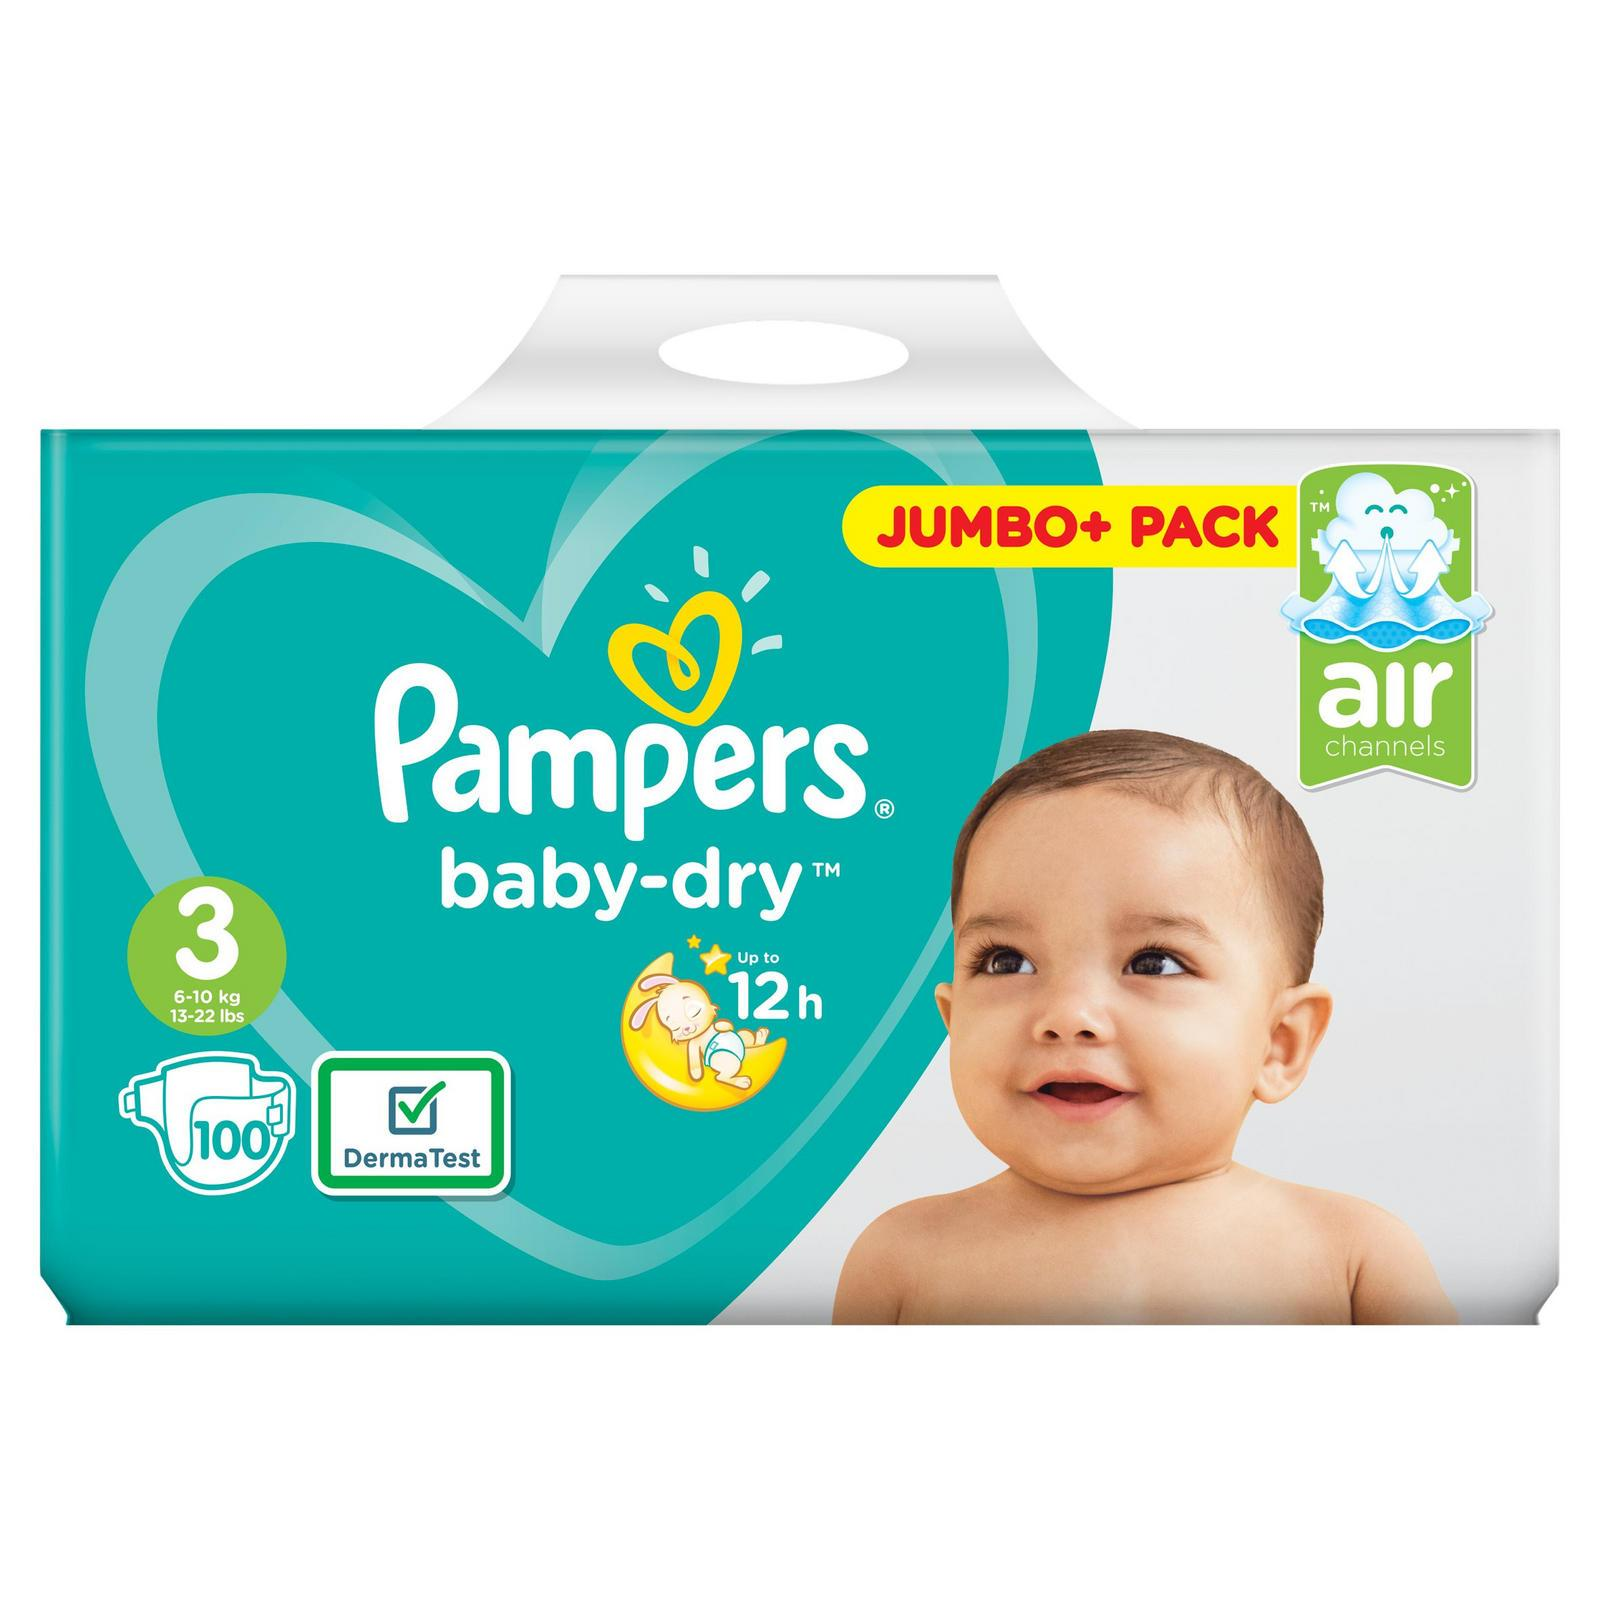 Pack 100 Nappies Pampers Baby Dry Size 3 Jumbo